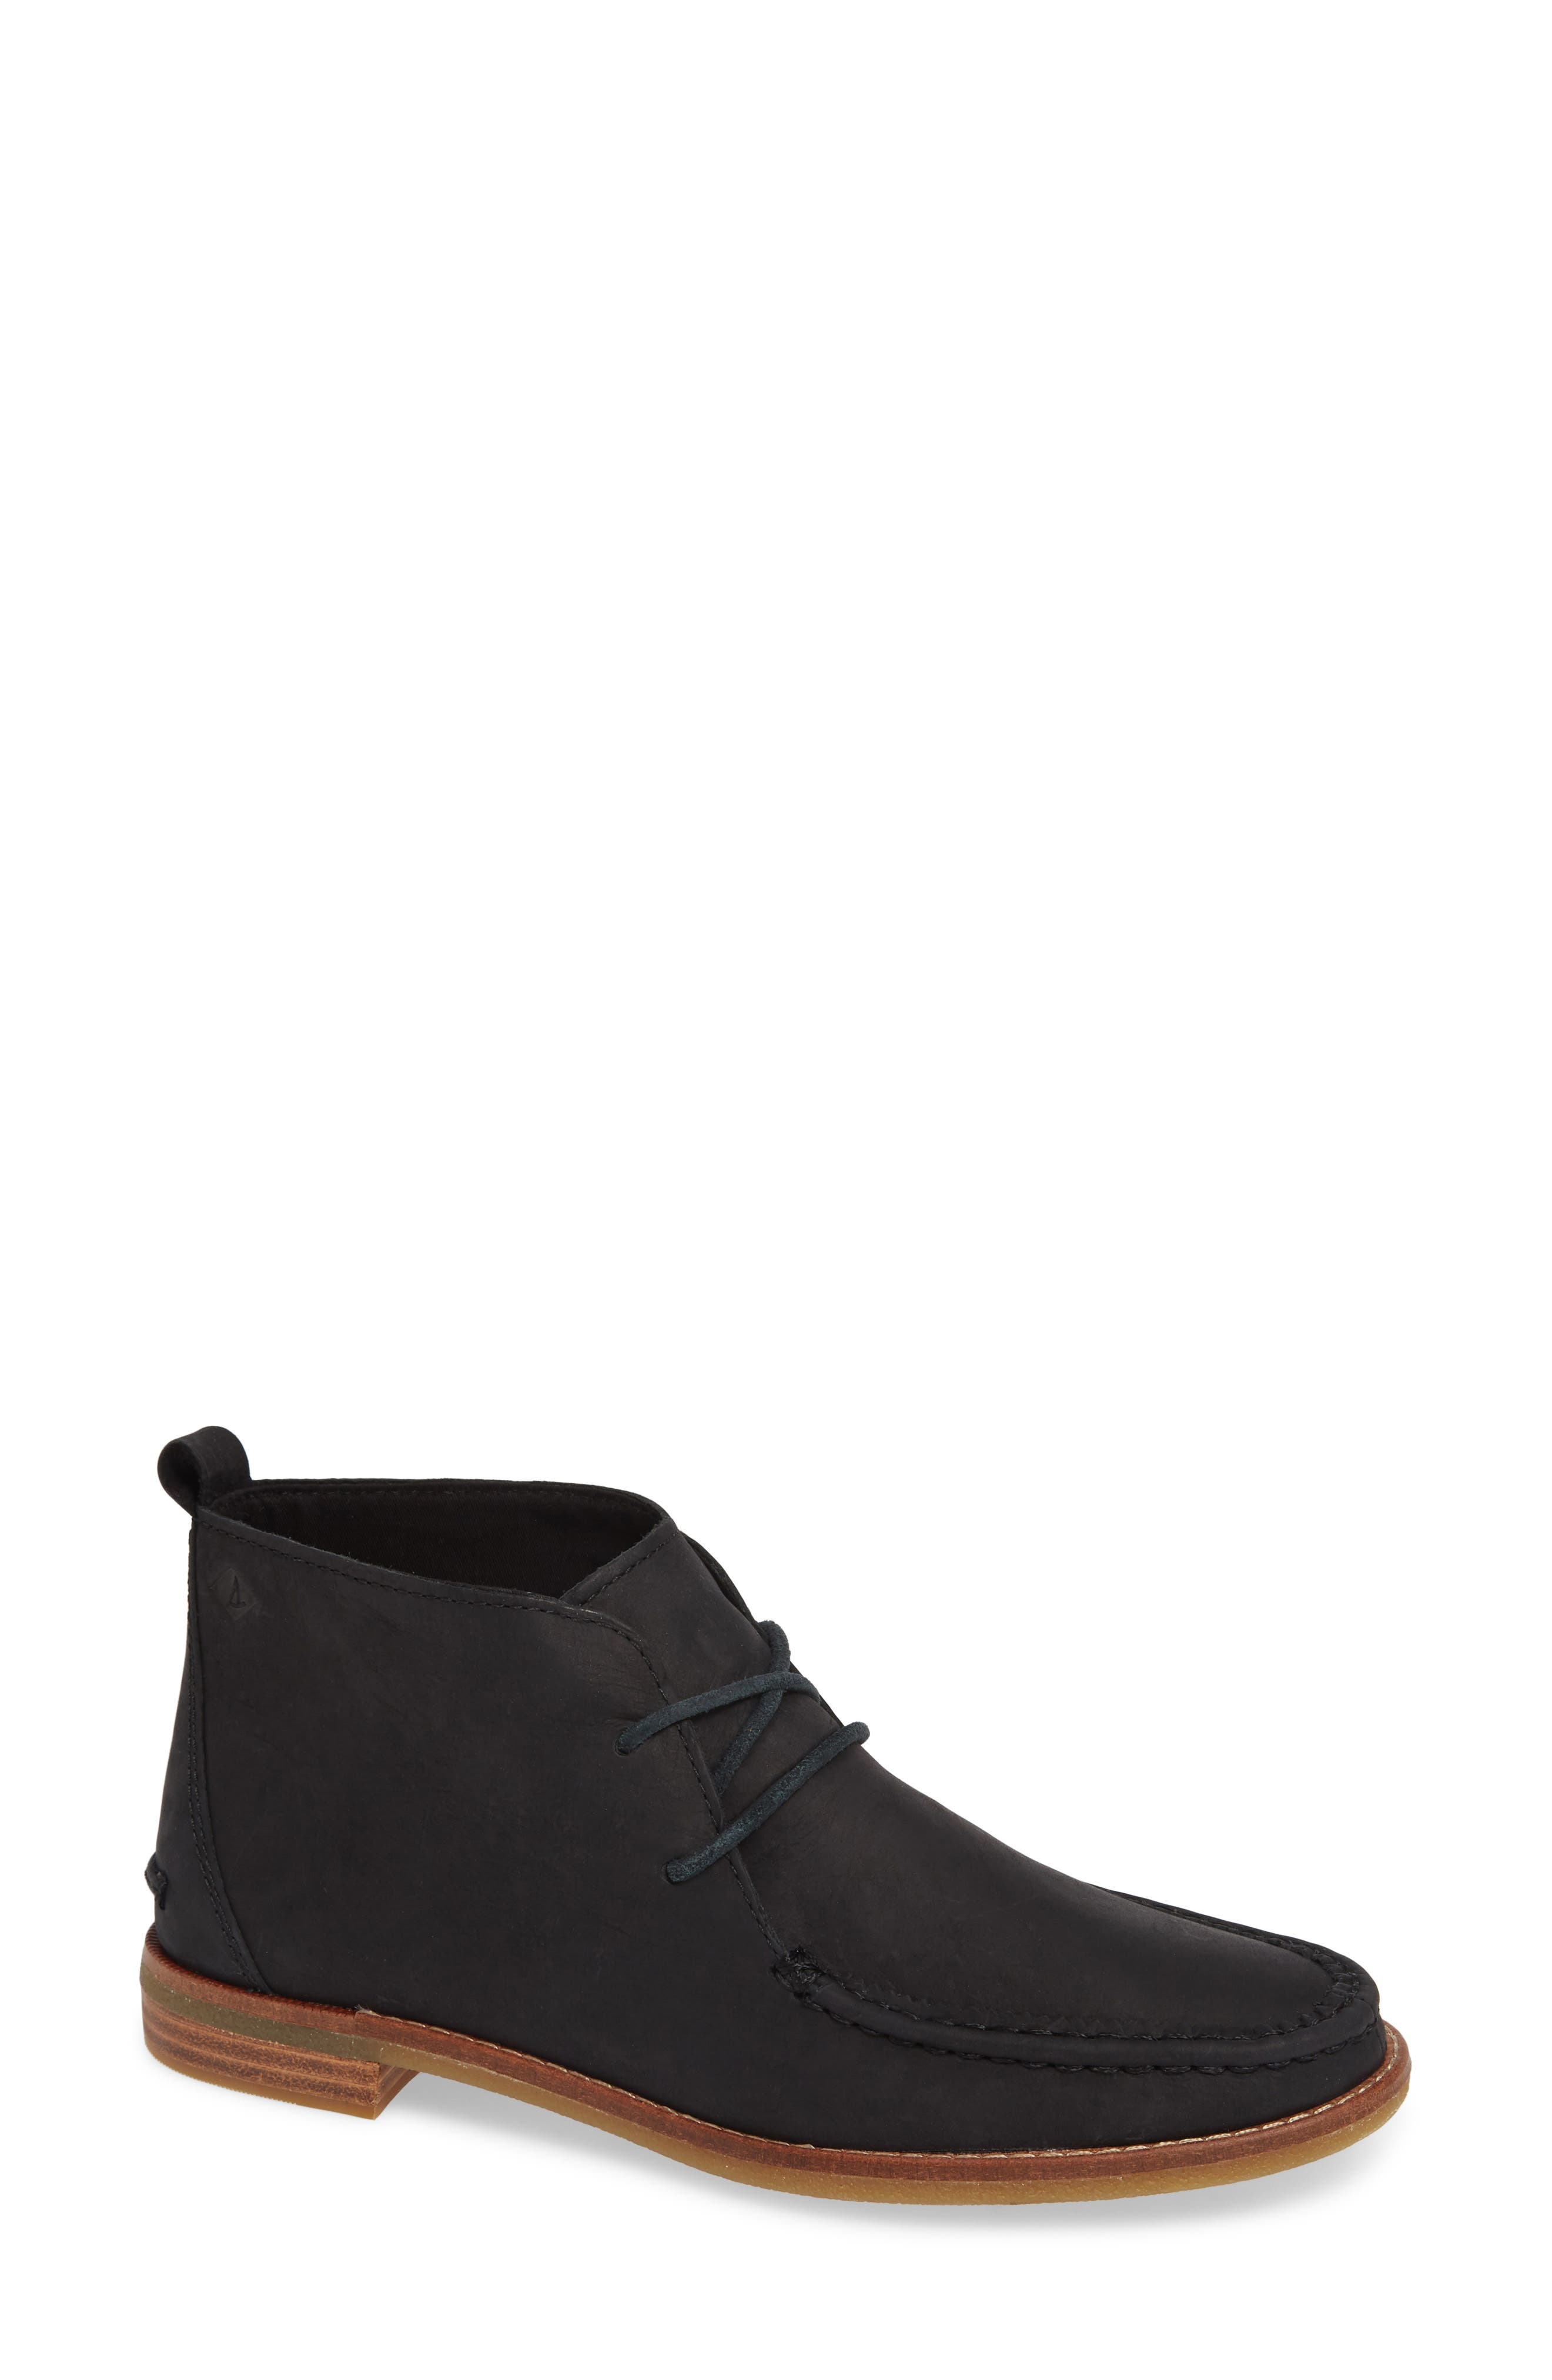 Seaport Tahoe Chukka Bootie,                             Main thumbnail 1, color,                             BLACK SUEDE